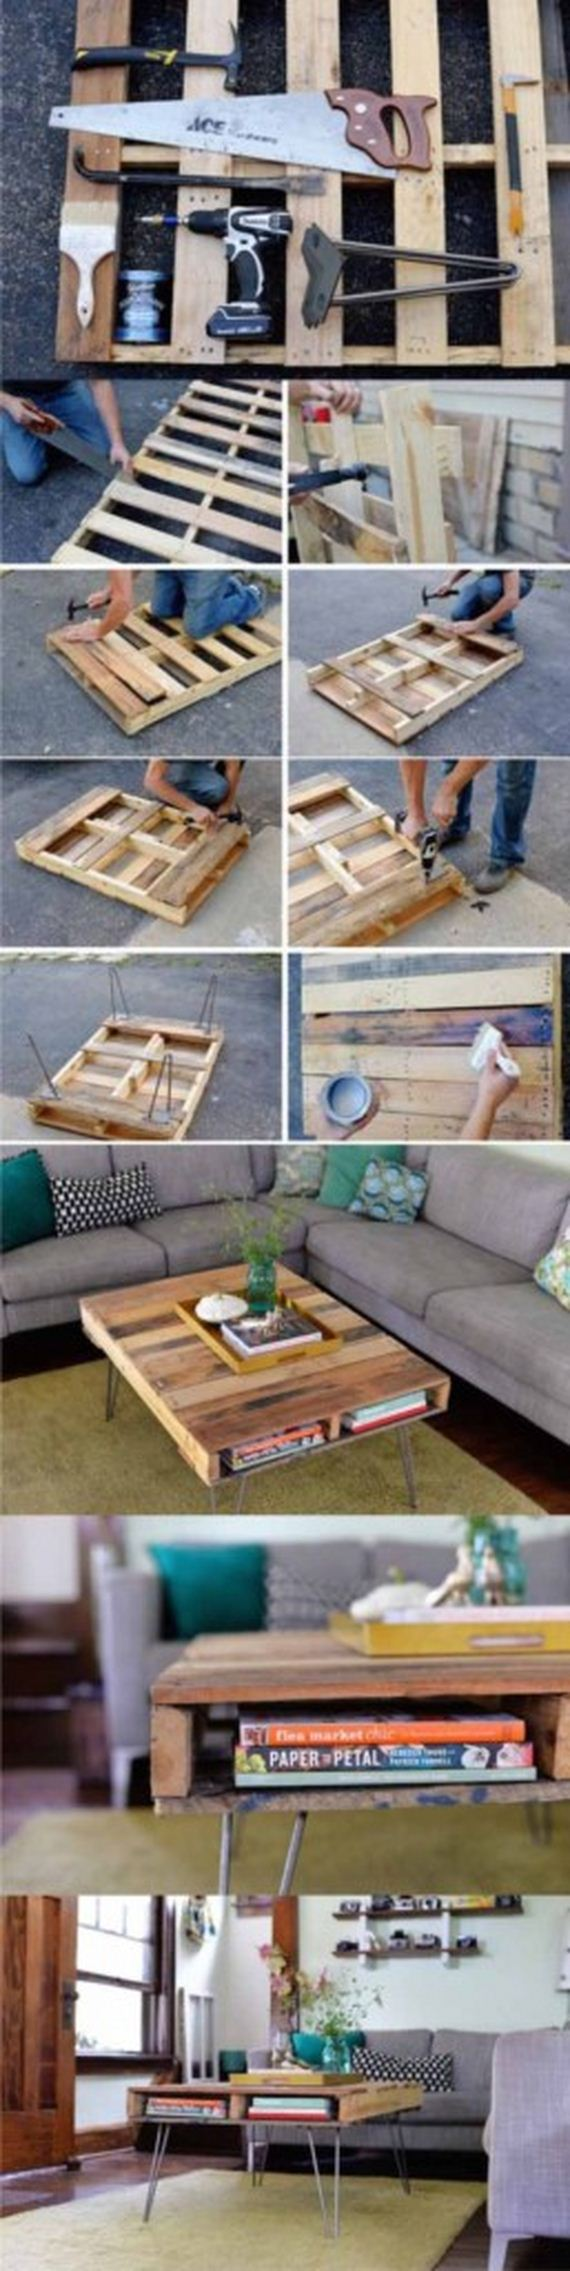 03-diy-coffee-tables